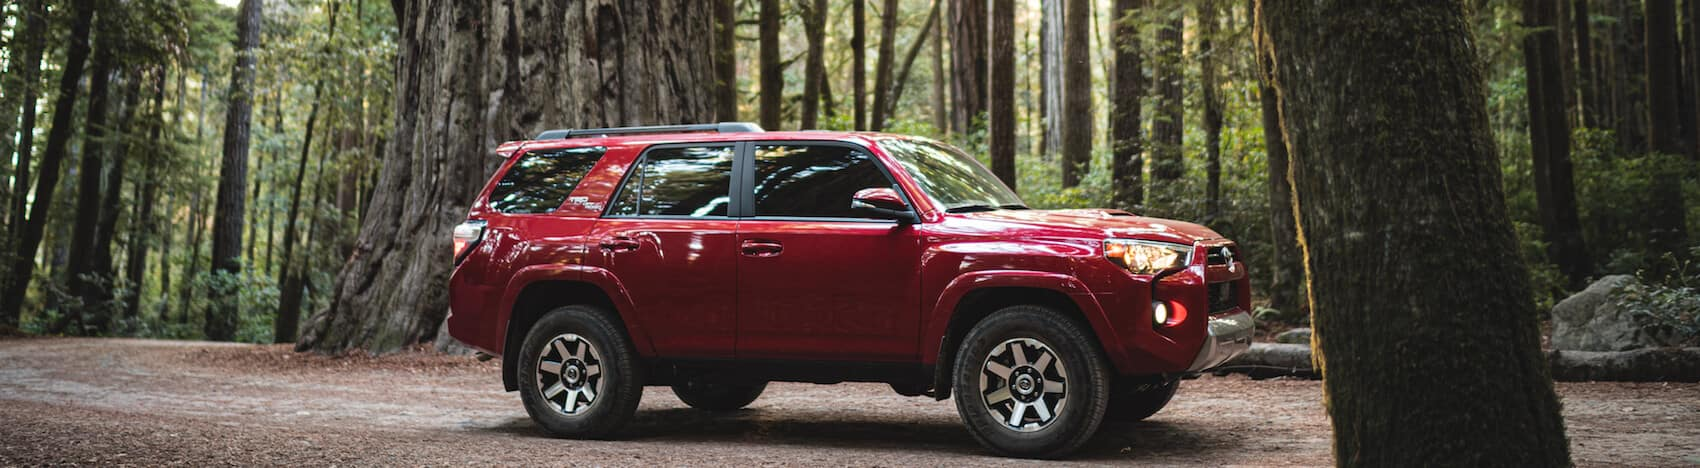 2020 Toyota 4Runner Lawrence, MA